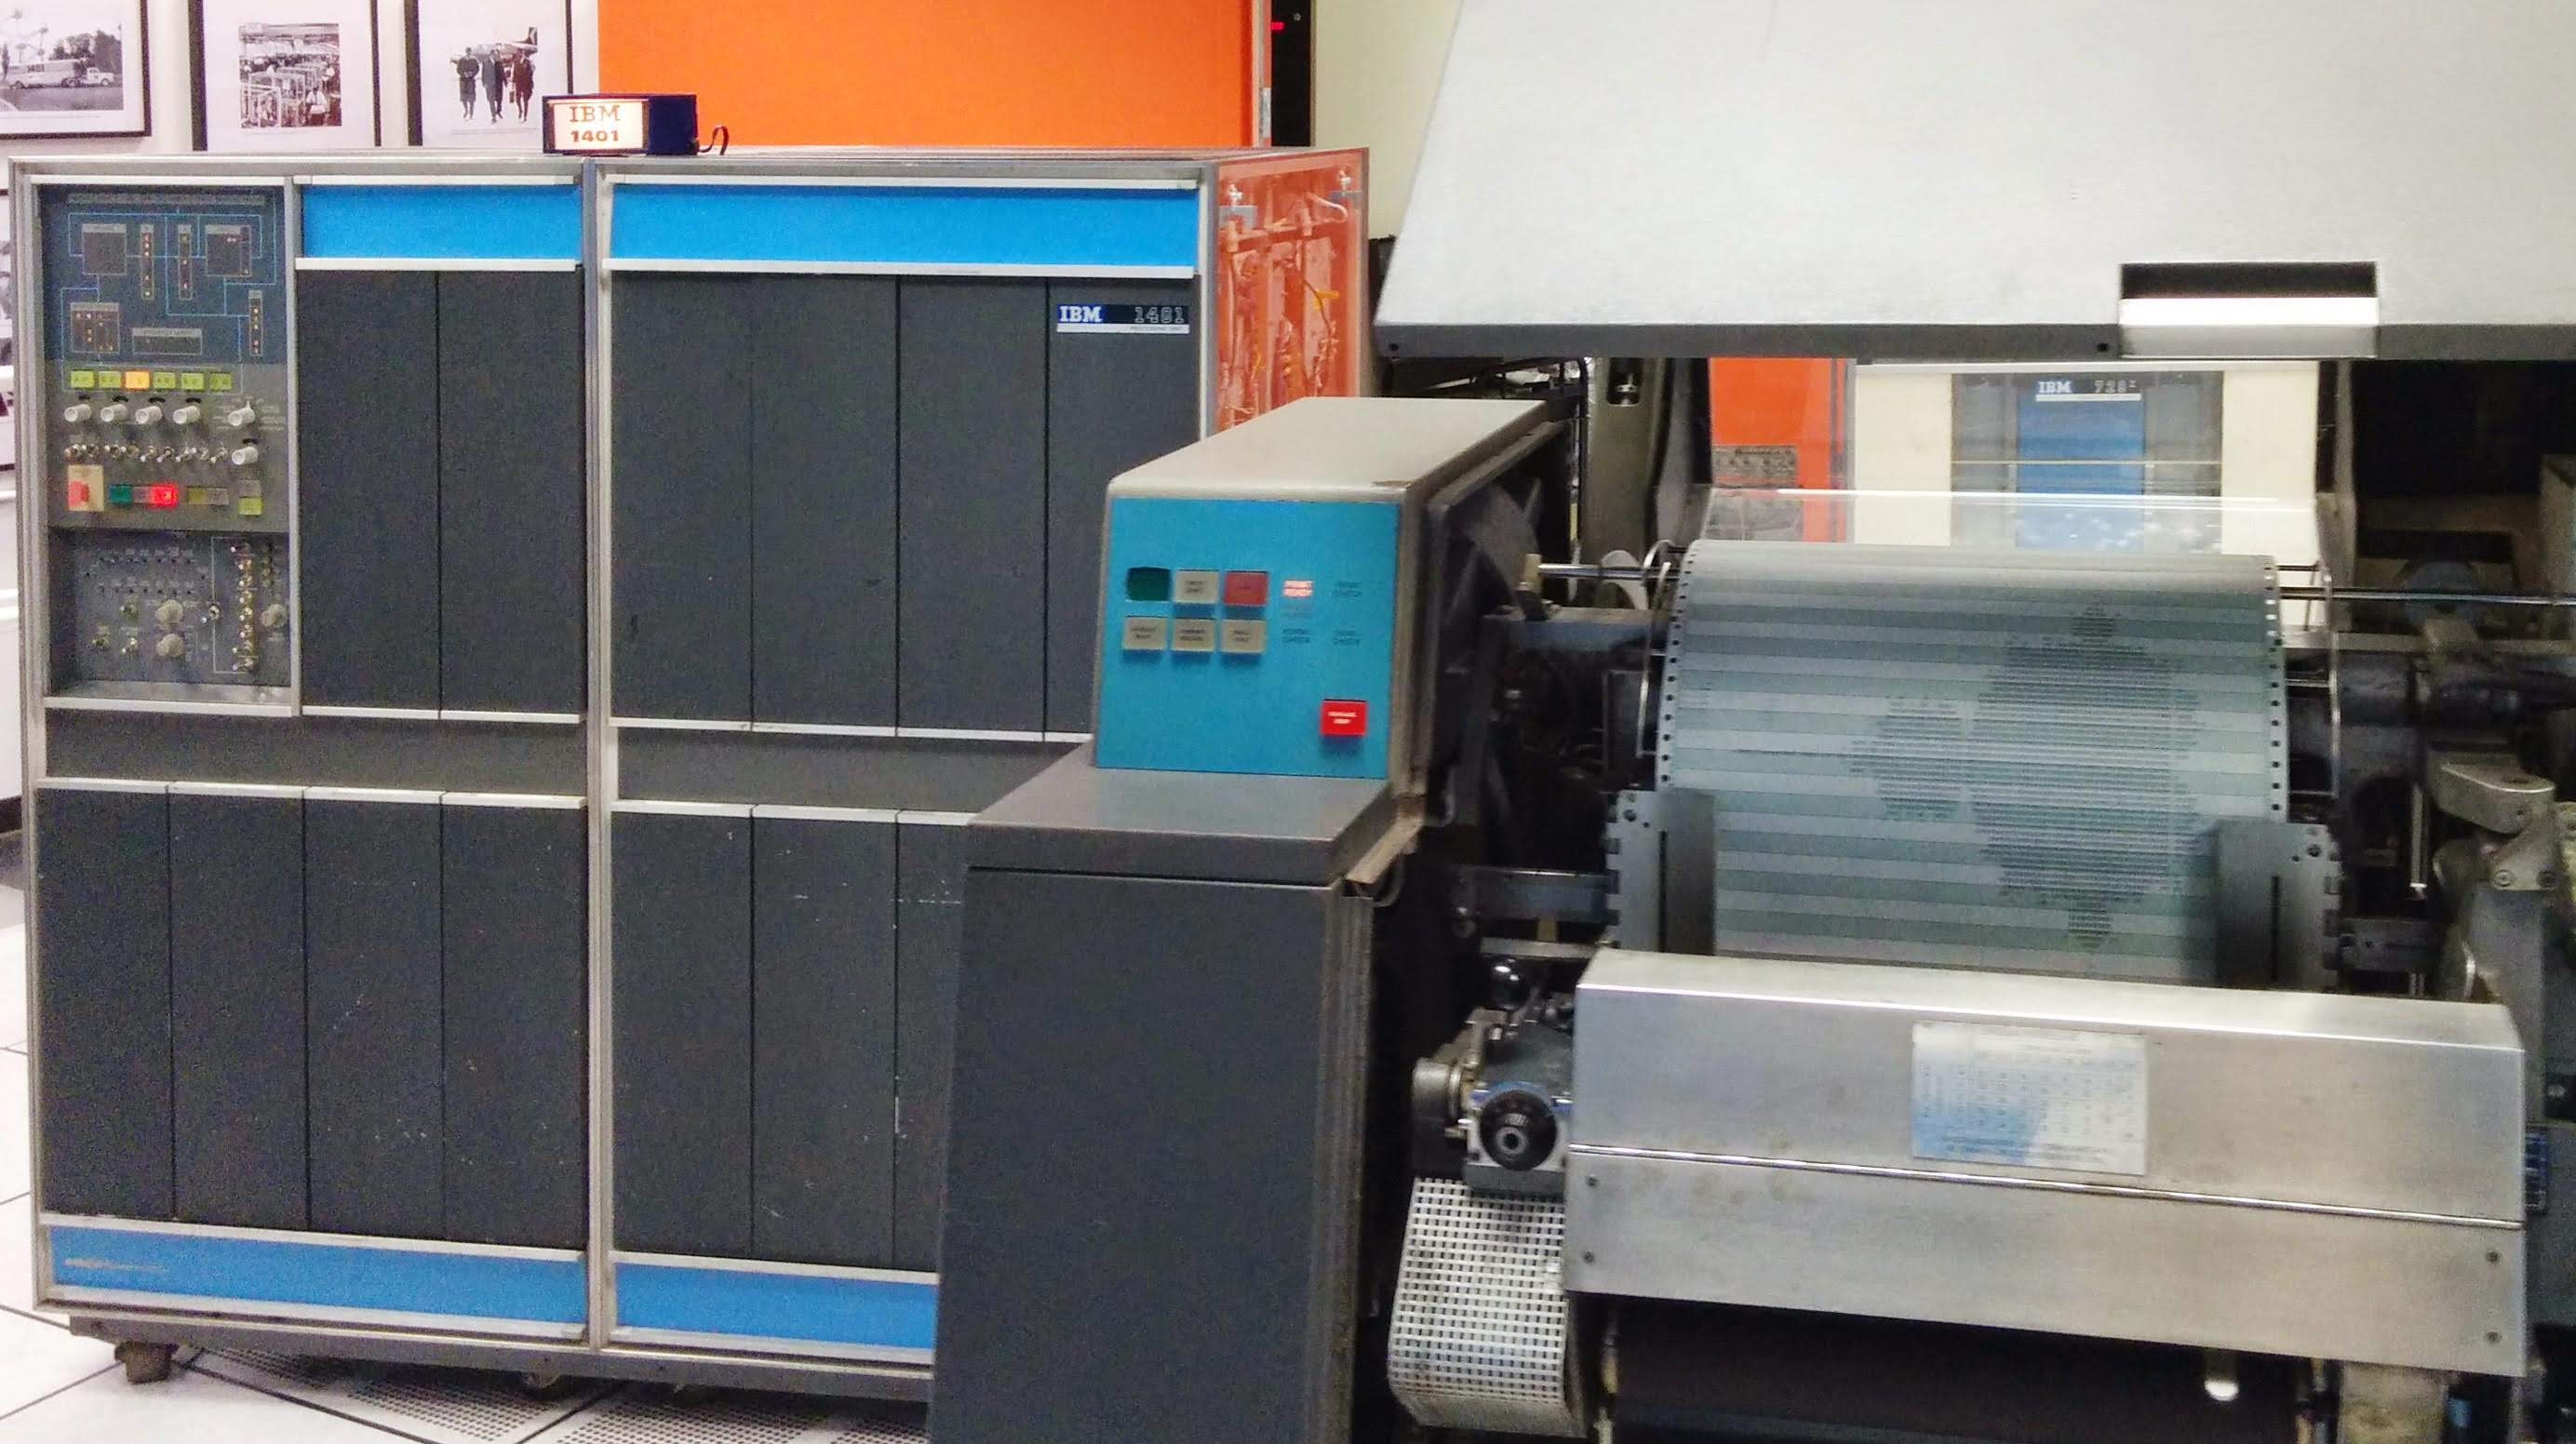 The IBM 1401 mainframe computer (left) at the Computer History Museum  printing the Mandelbrot